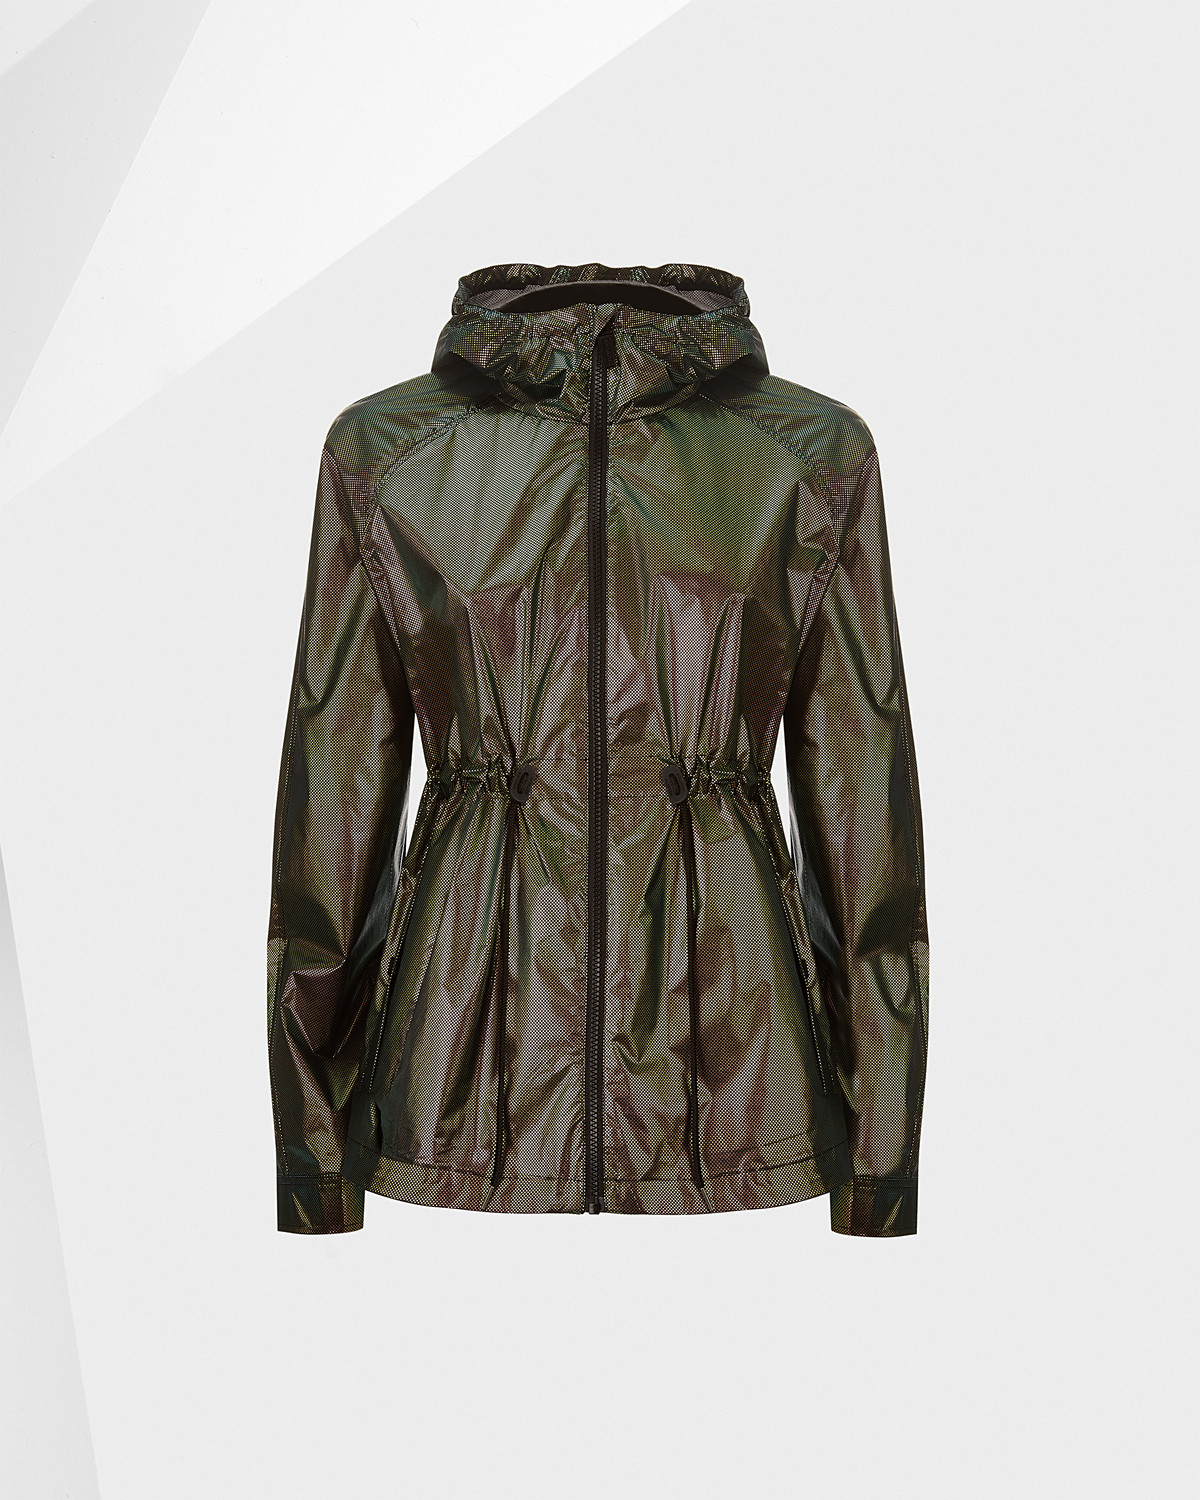 HUNTER - Another one from Hunter. lightweight and easy to pack for that weekend getaway and its currently half price in the sale.